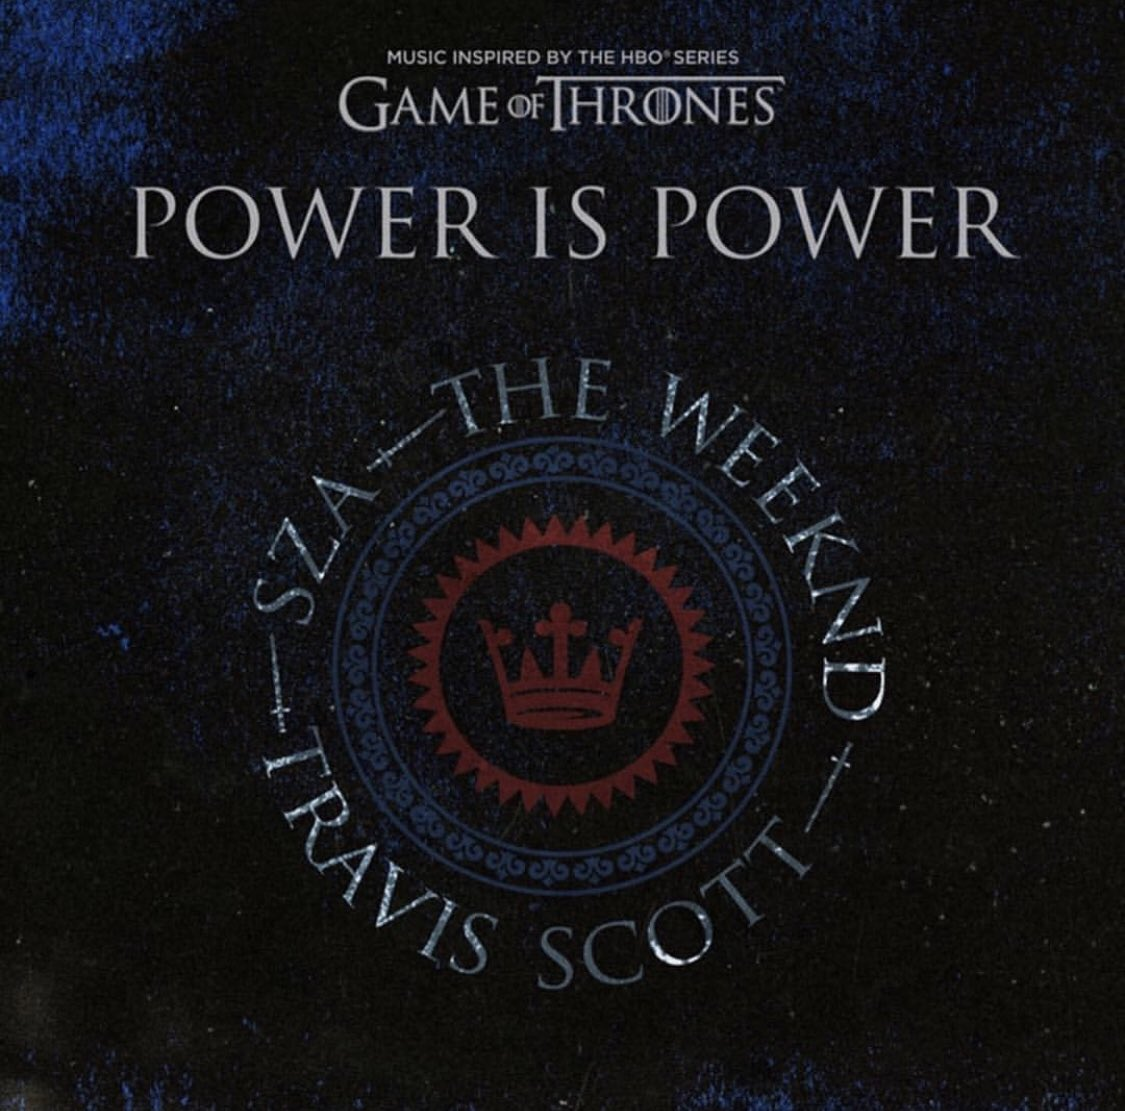 heavy is the crown... but only for the weak. POWER IS POWER 4/18 #GAMEOFTHRONES been watching this show since 2011... my fans know! 🐺🐺🐺 didn't think twice !